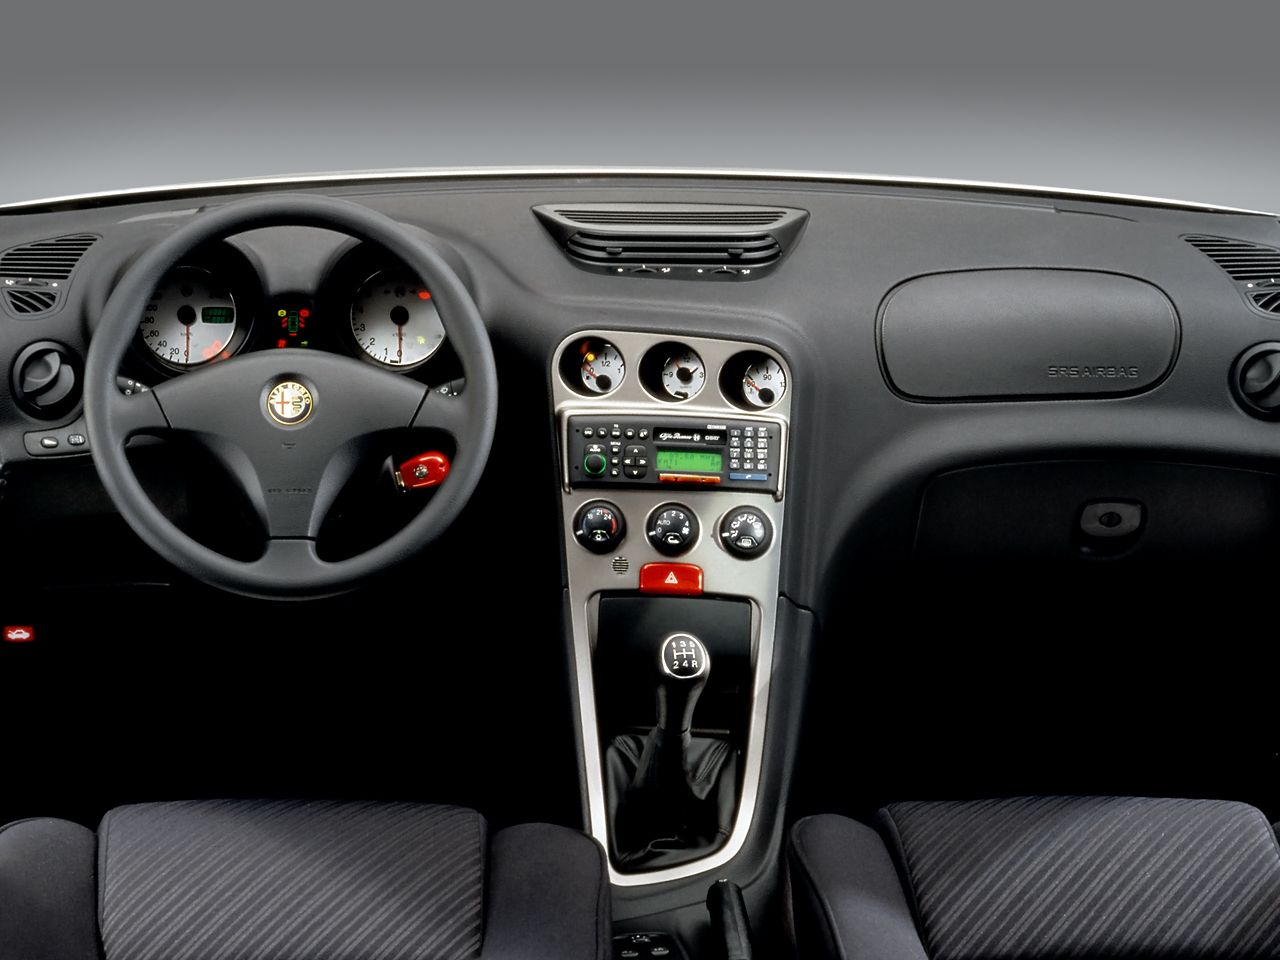 1997 Alfa Romeo 156 | Interior and Dashboard | Pinterest | Alfa ...